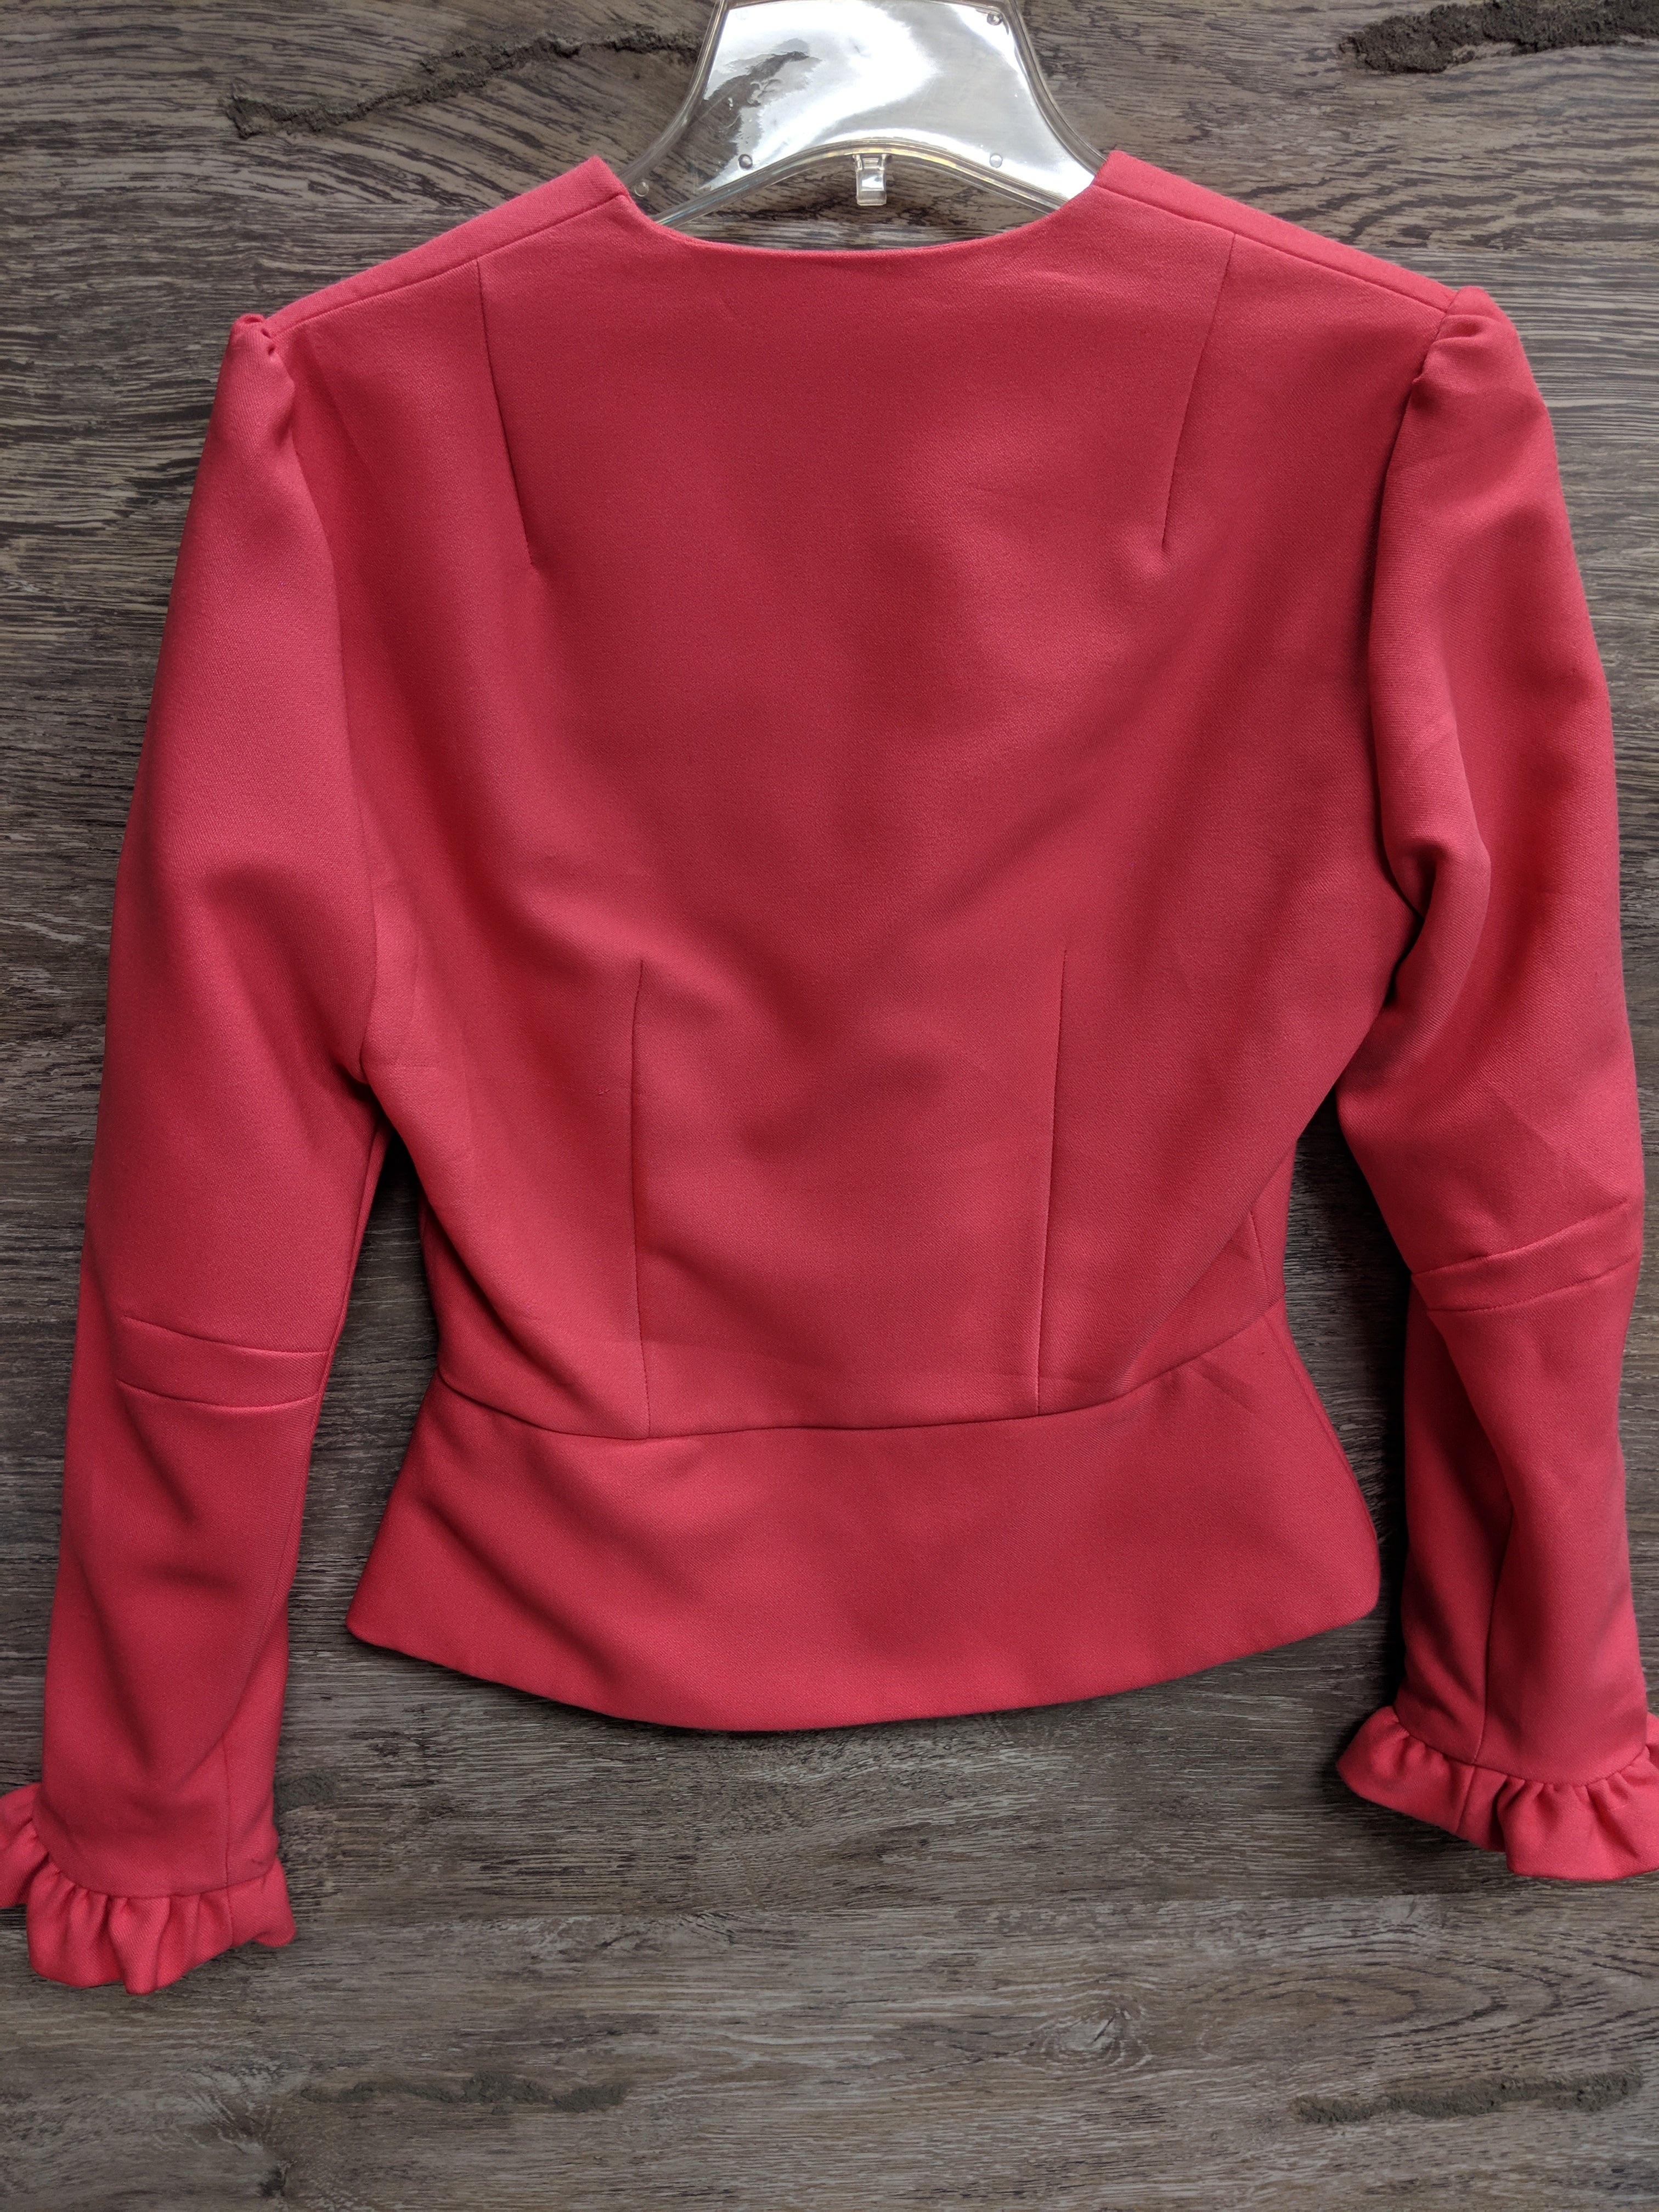 AS IS - Ruth Hughes Custom Pink Blouse